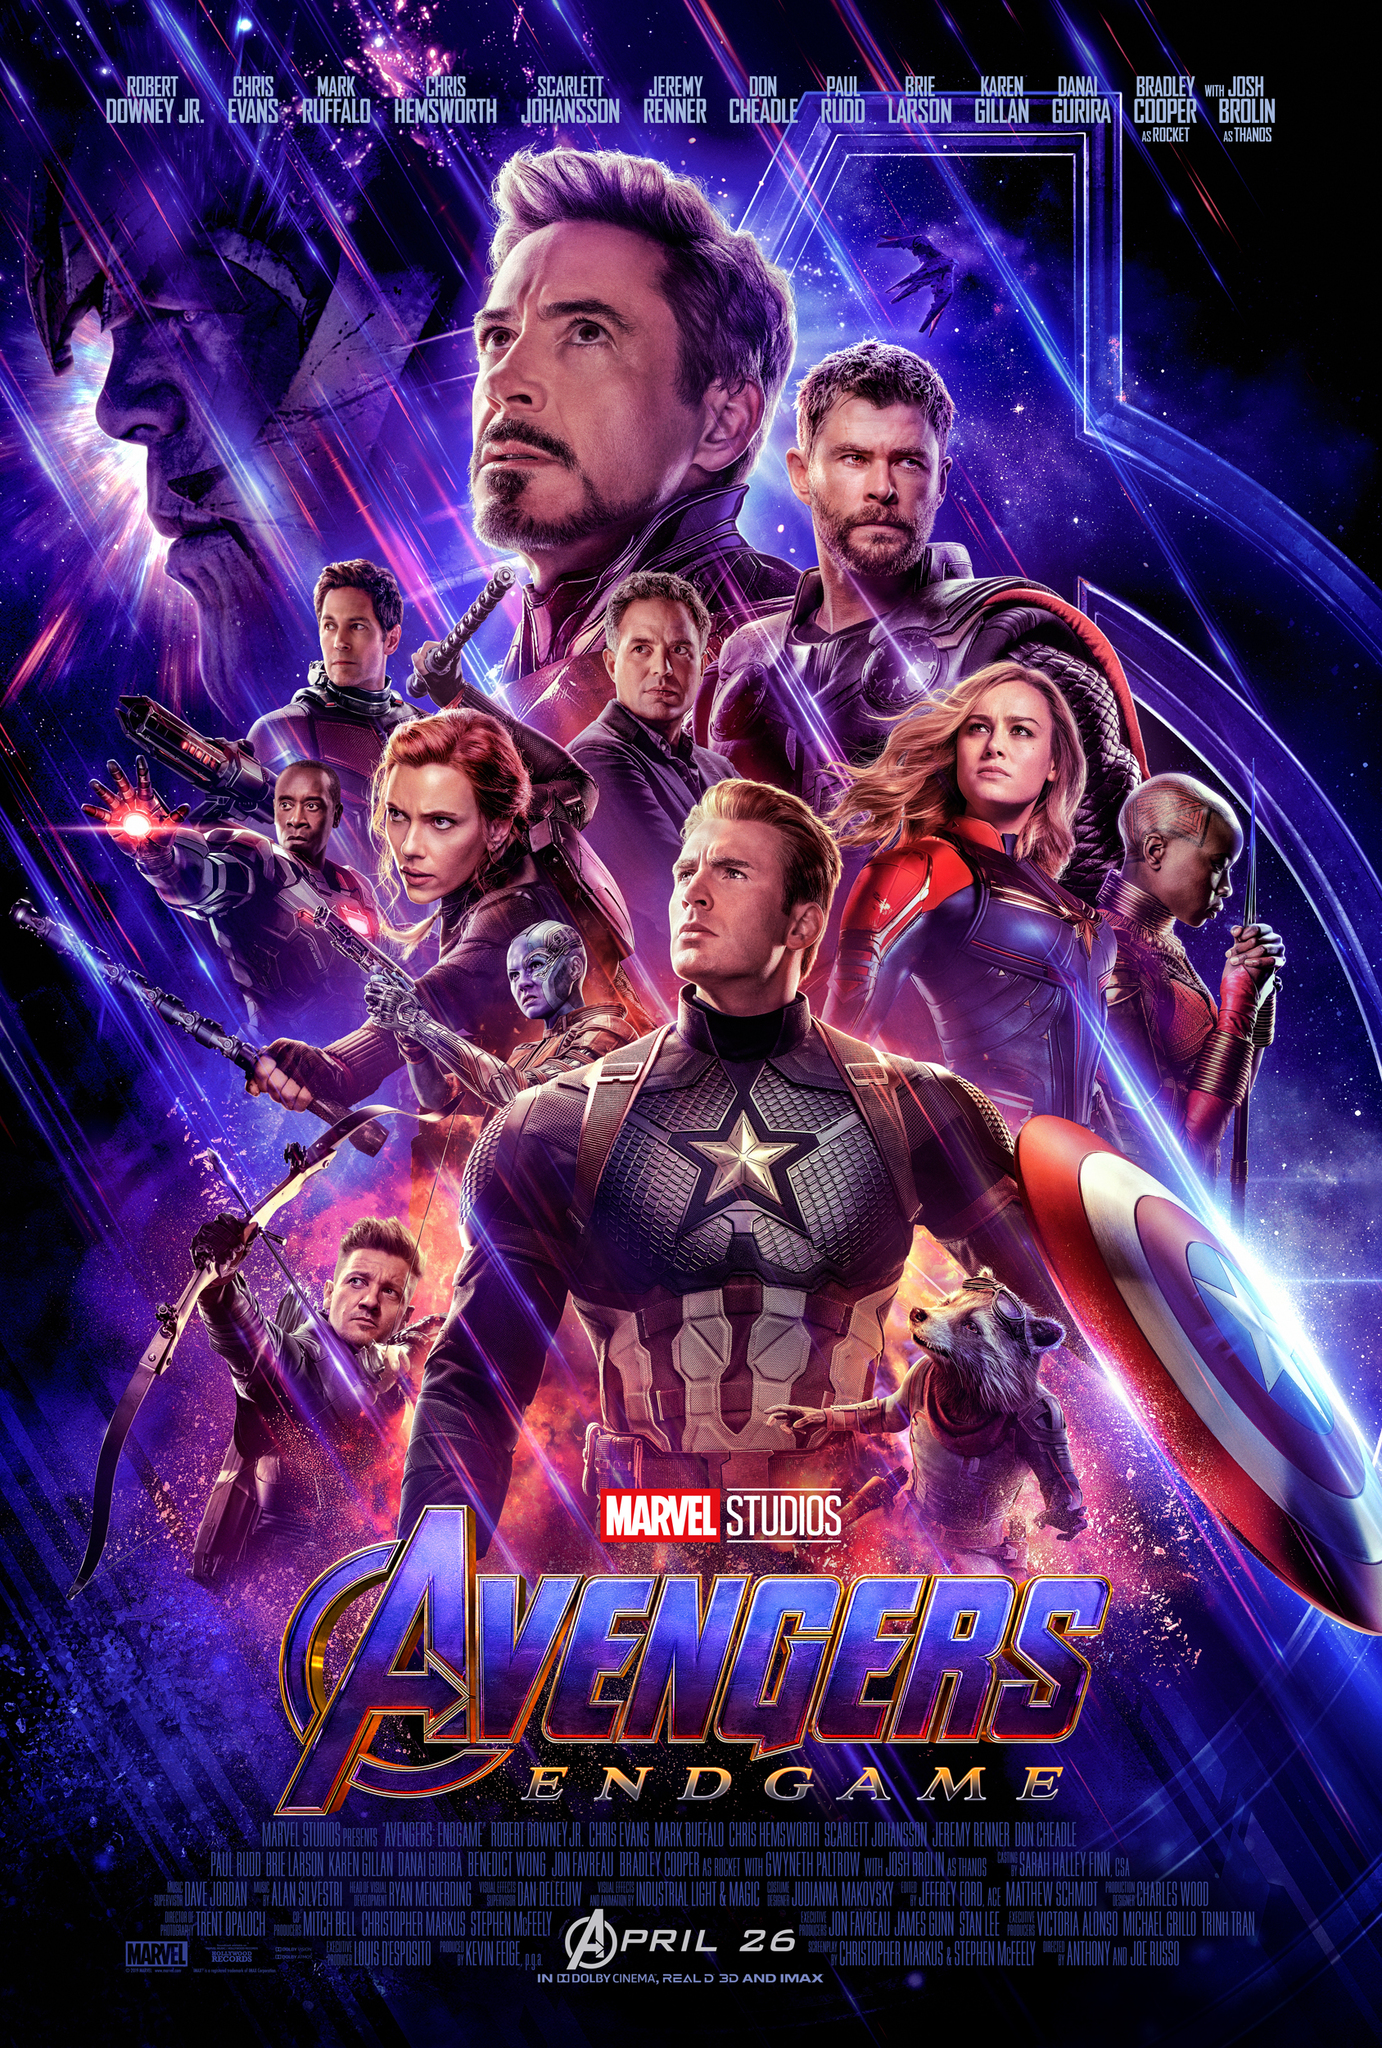 Avengers Endgame 2019 480p HDCAM V2 Dual Audio 700MB Hindi-English x264 CineVood Exclusive